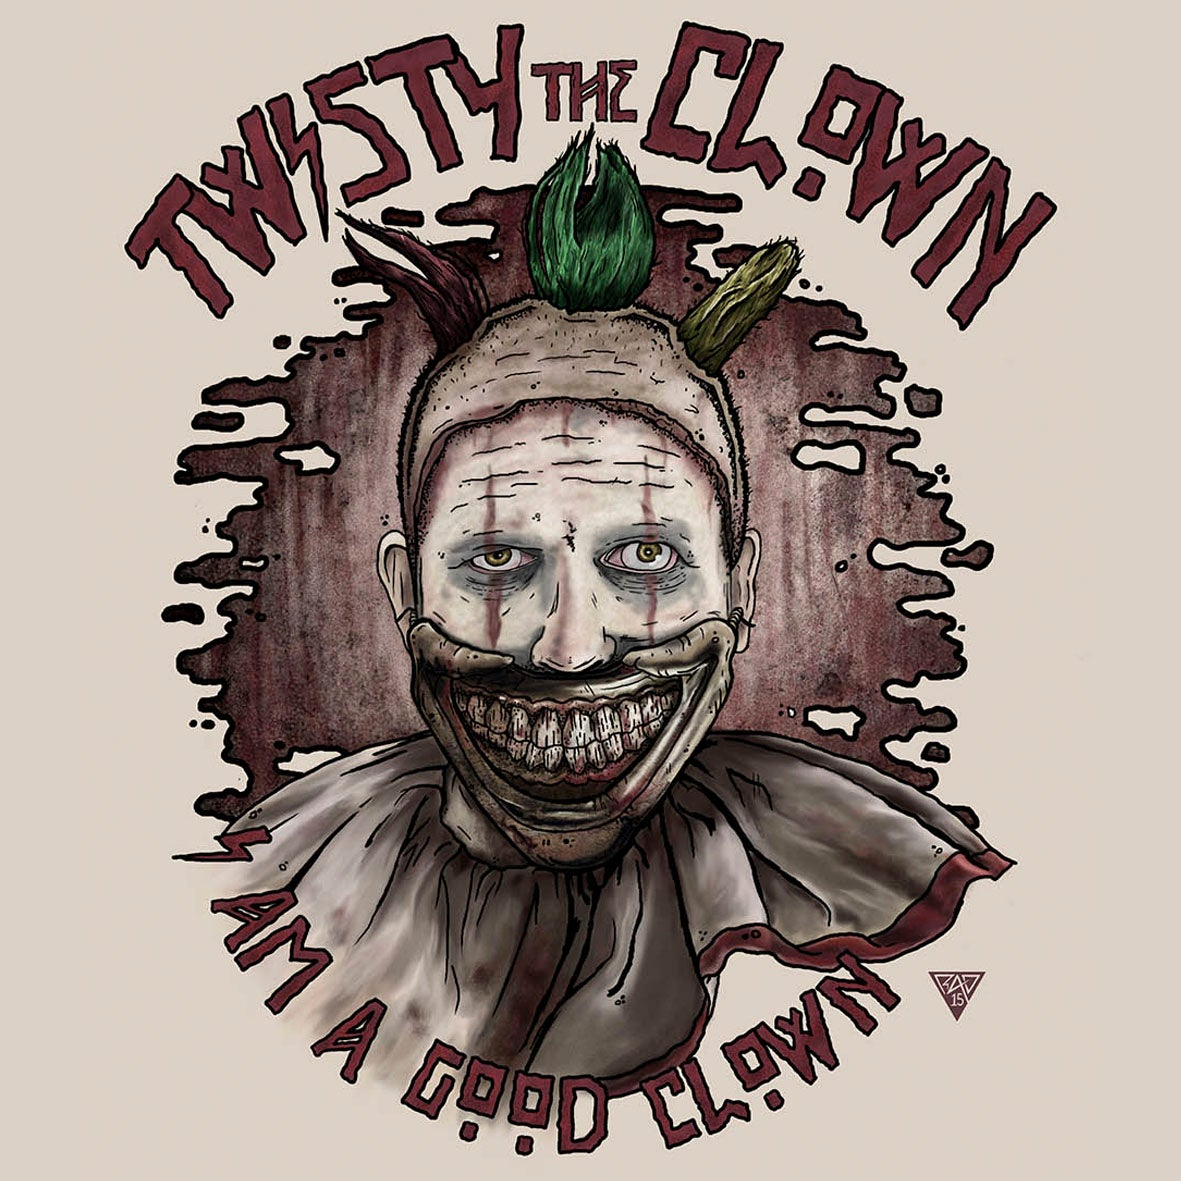 rhys auty designs u2014 twisty the clown a4